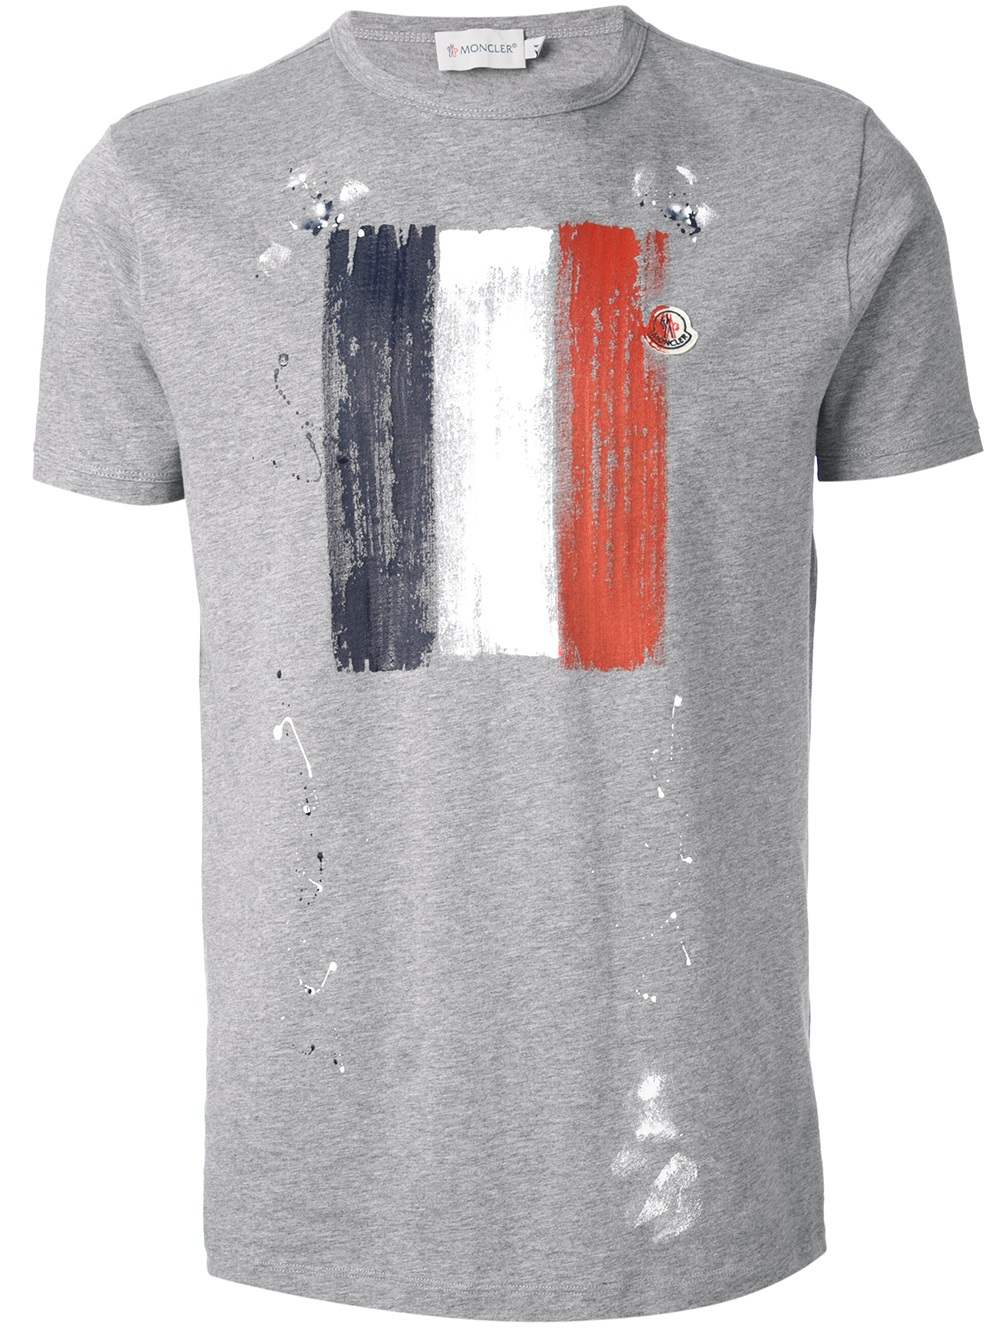 mens grey moncler t shirt